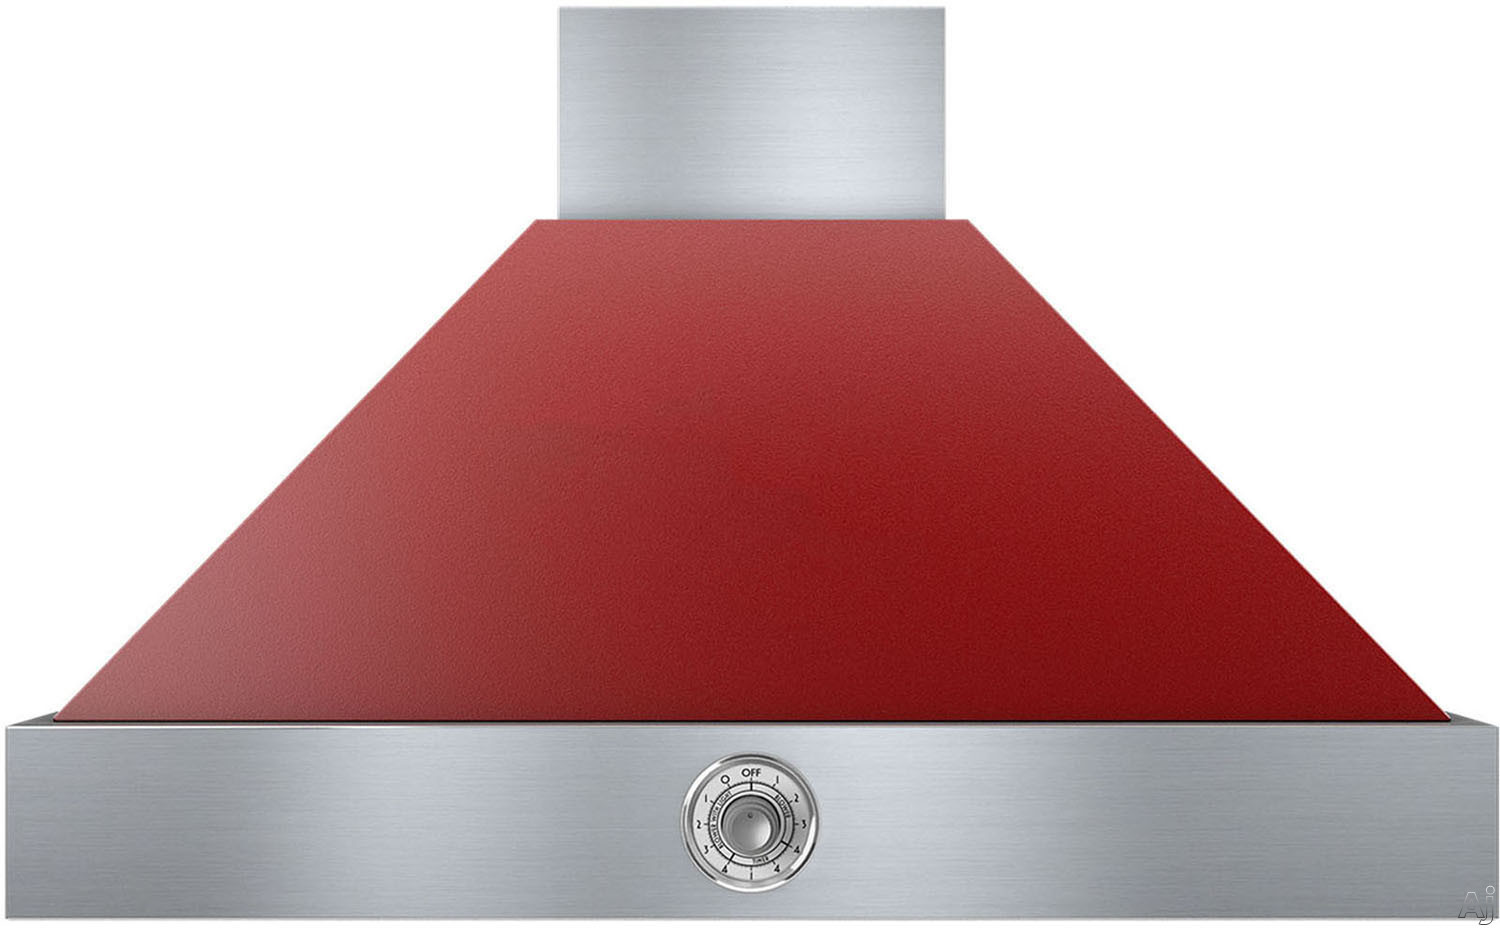 Superiore Deco Series HD361ACRC 36 Inch Wall Mount Canopy Hood with 600 CFM Blower, 4 Speed Settings, 3 Dishwasher Safe Baffle Filters, 2 Halogen Lights, 58 dBA Noise Level and Automatic Shut-Off: Red